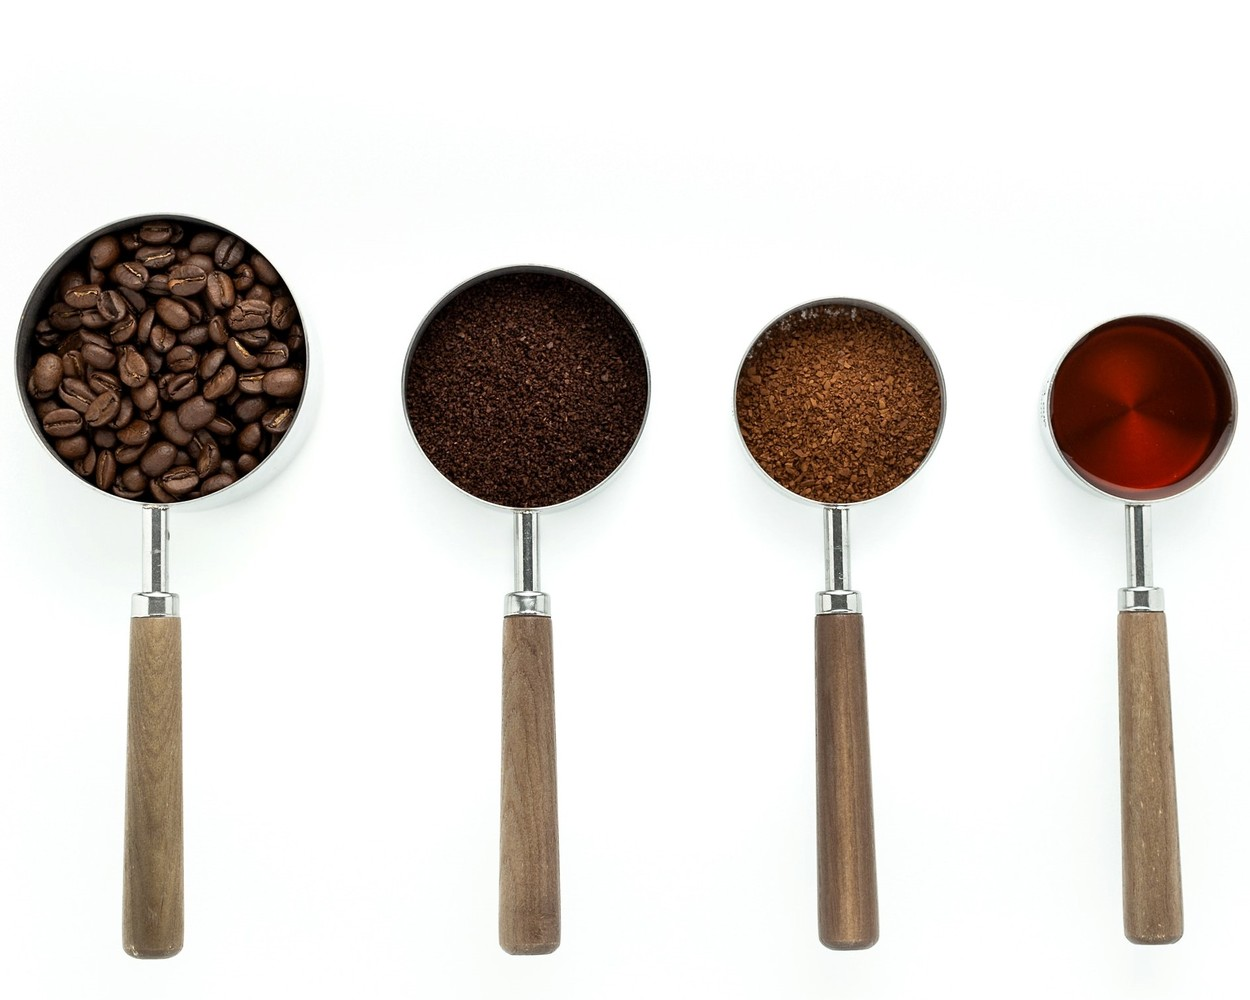 4 coffee roasters in a row.